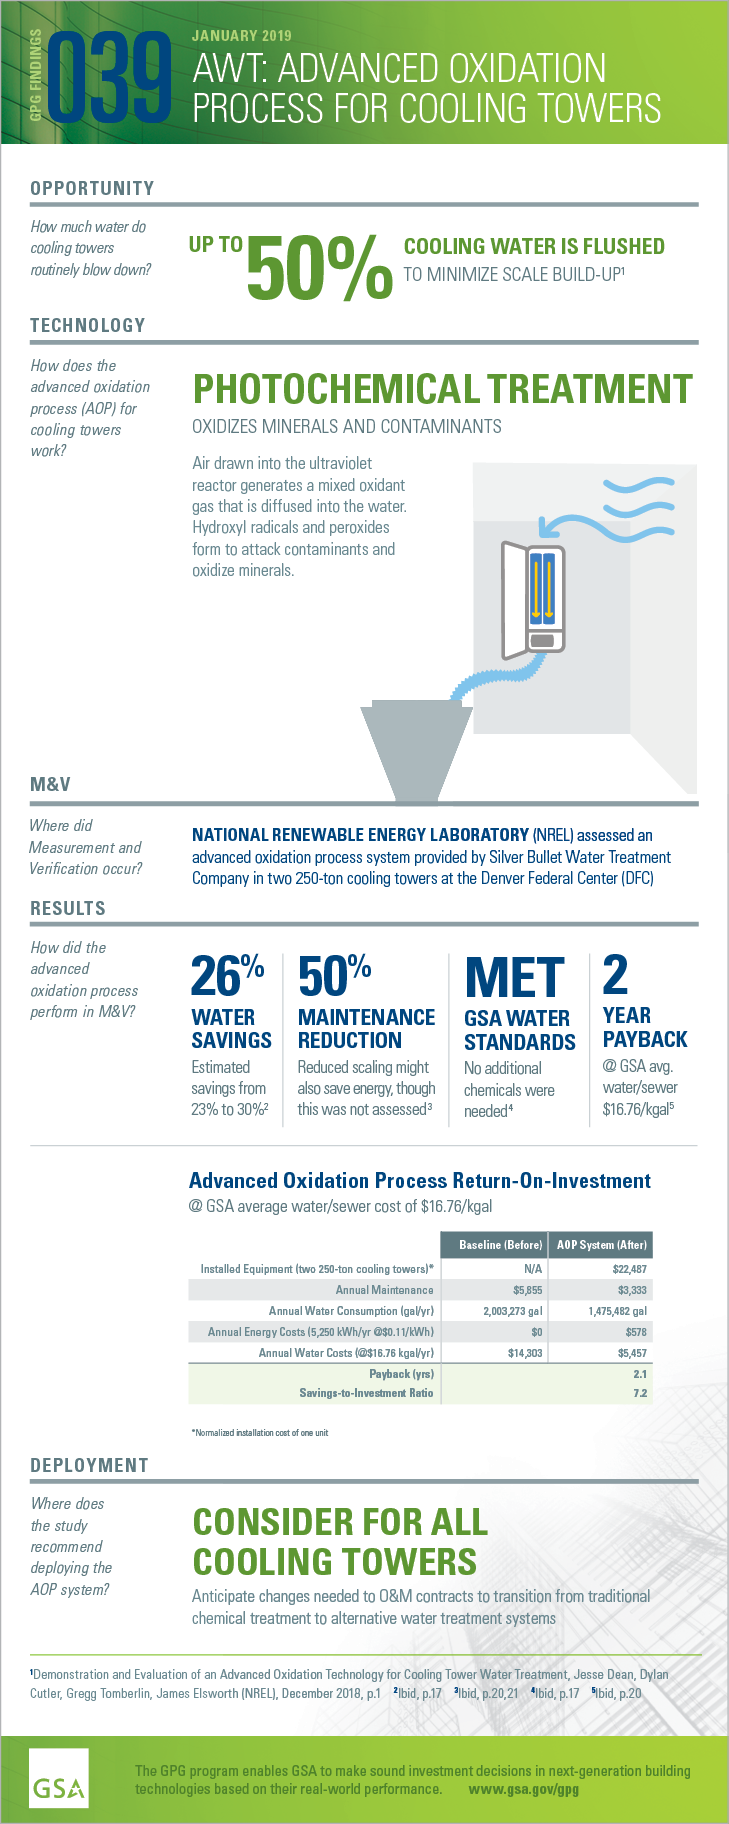 GPG Findings 038, December 2018, Electrochemical Cooling Tower Water Treatment. Opportunity: How much water do cooling towers use? 28%OF WATER IN COMMERCIAL BUILDINGS IS USED BY COOLING TOWERS. Technology: How does electrochemical process water treatment work? ELECTROLYSIS SEQUESTERS SCALE IN REACTOR TUBES AND CREATES CHLORINE, A NATURAL BIOCIDE. Measurement and Verification. Where did M and V occur? NATIONAL RENEWABLE ENERGY LABORATORY (NREL) assessed an alternative water treatment (AWT) system provided by Dynamic Water Technology for two 150-ton cooling towers in Savannah, Georgia. Results: How did electrochemical process water treatment perform in M&V? 32% WATER SAVINGS 99.8% reduction in blowdown. 50% MAINTENANCE REDUCTION Small cost increase in annual O&M contract. 100% CHEMICAL SAVINGS Technology generates chlorine; reduced slime. 2.5 YEAR PAYBACK @ GSA avg. water/sewer $16.76/kgal Deployment: Where does the study recommend deploying electrochemical process water treatment? CONSIDER FOR ALL COOLING TOWERS Most cost-effective in areas with high water costs or where water is excessively hard, has high pH values and/or large amounts of total dissolved solids